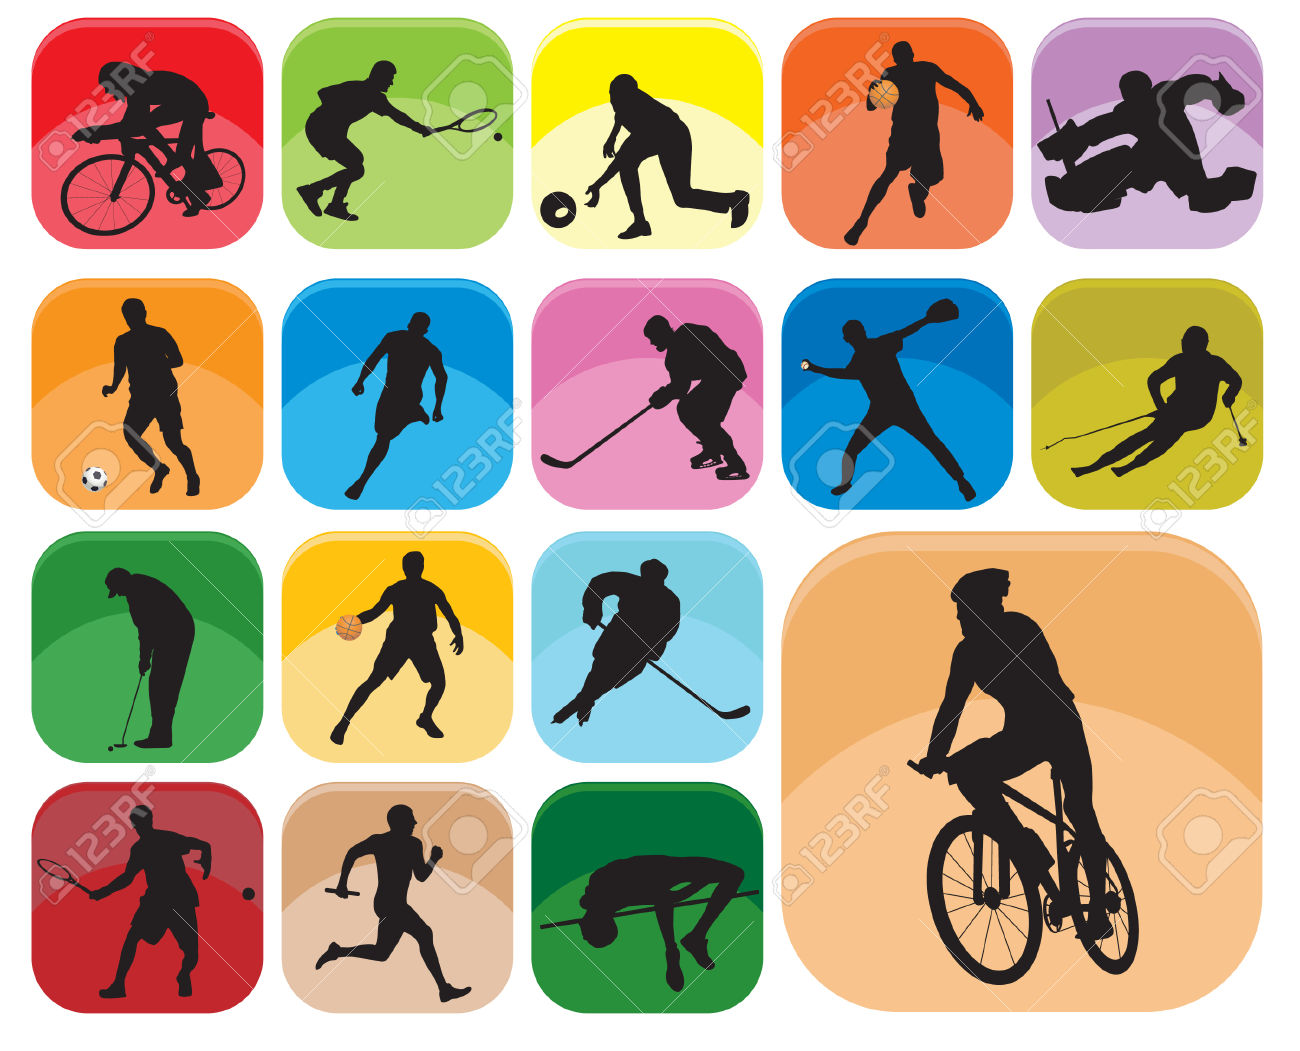 Sports Icons. Vector Illustration Royalty Free Cliparts, Vectors.